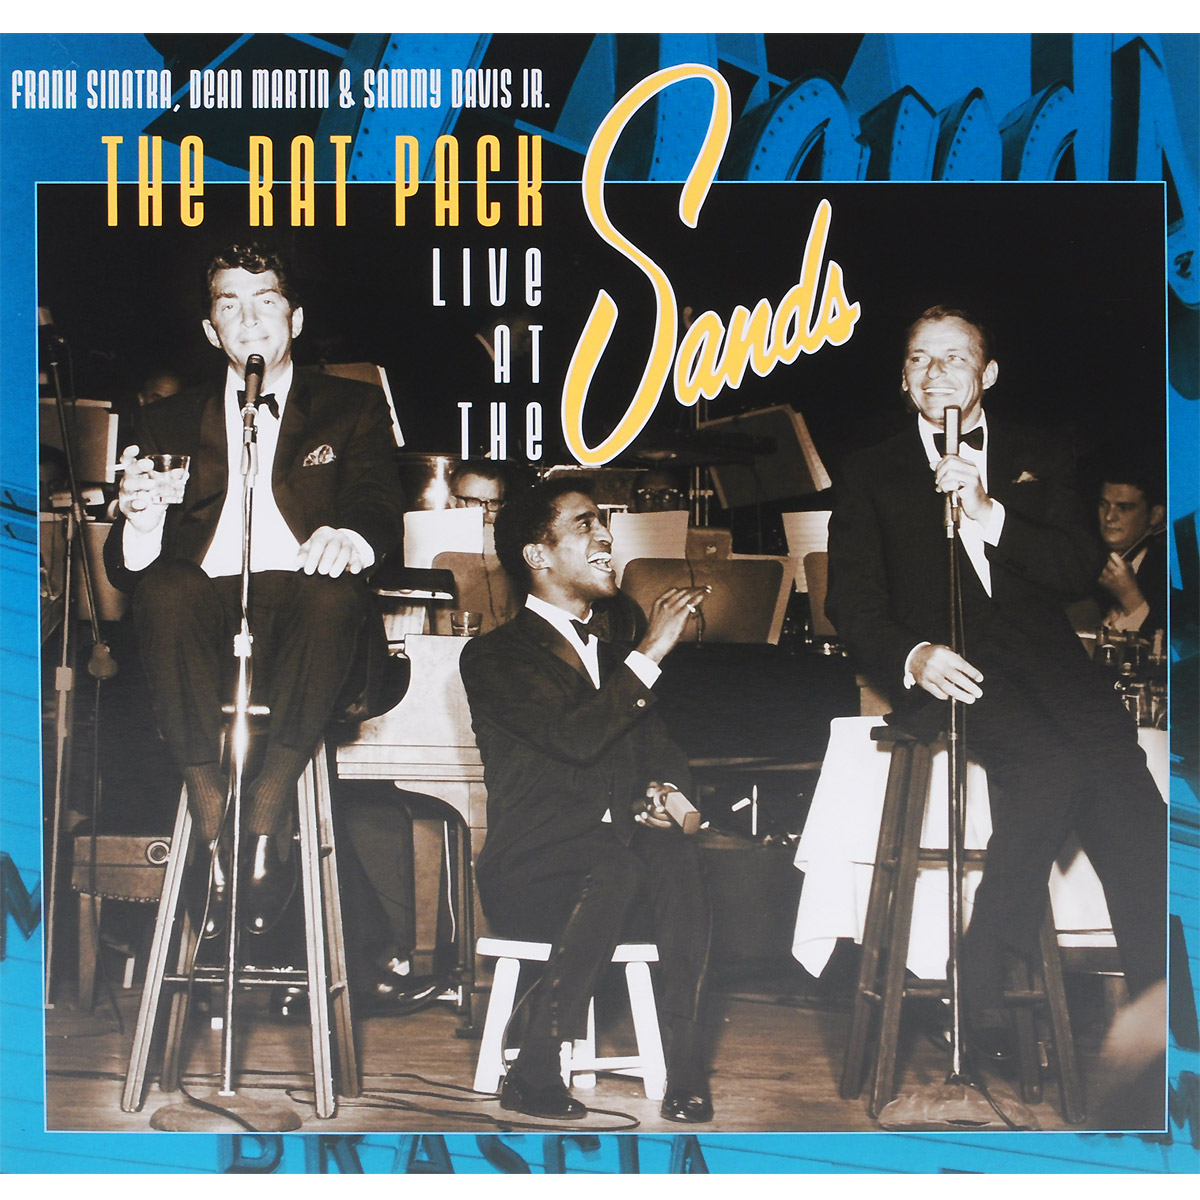 Frank Sinatra, Dean Martin & Sammy Davis Jr. The Rat Pack Live At The Sands (2 LP) ontario knife rat 1